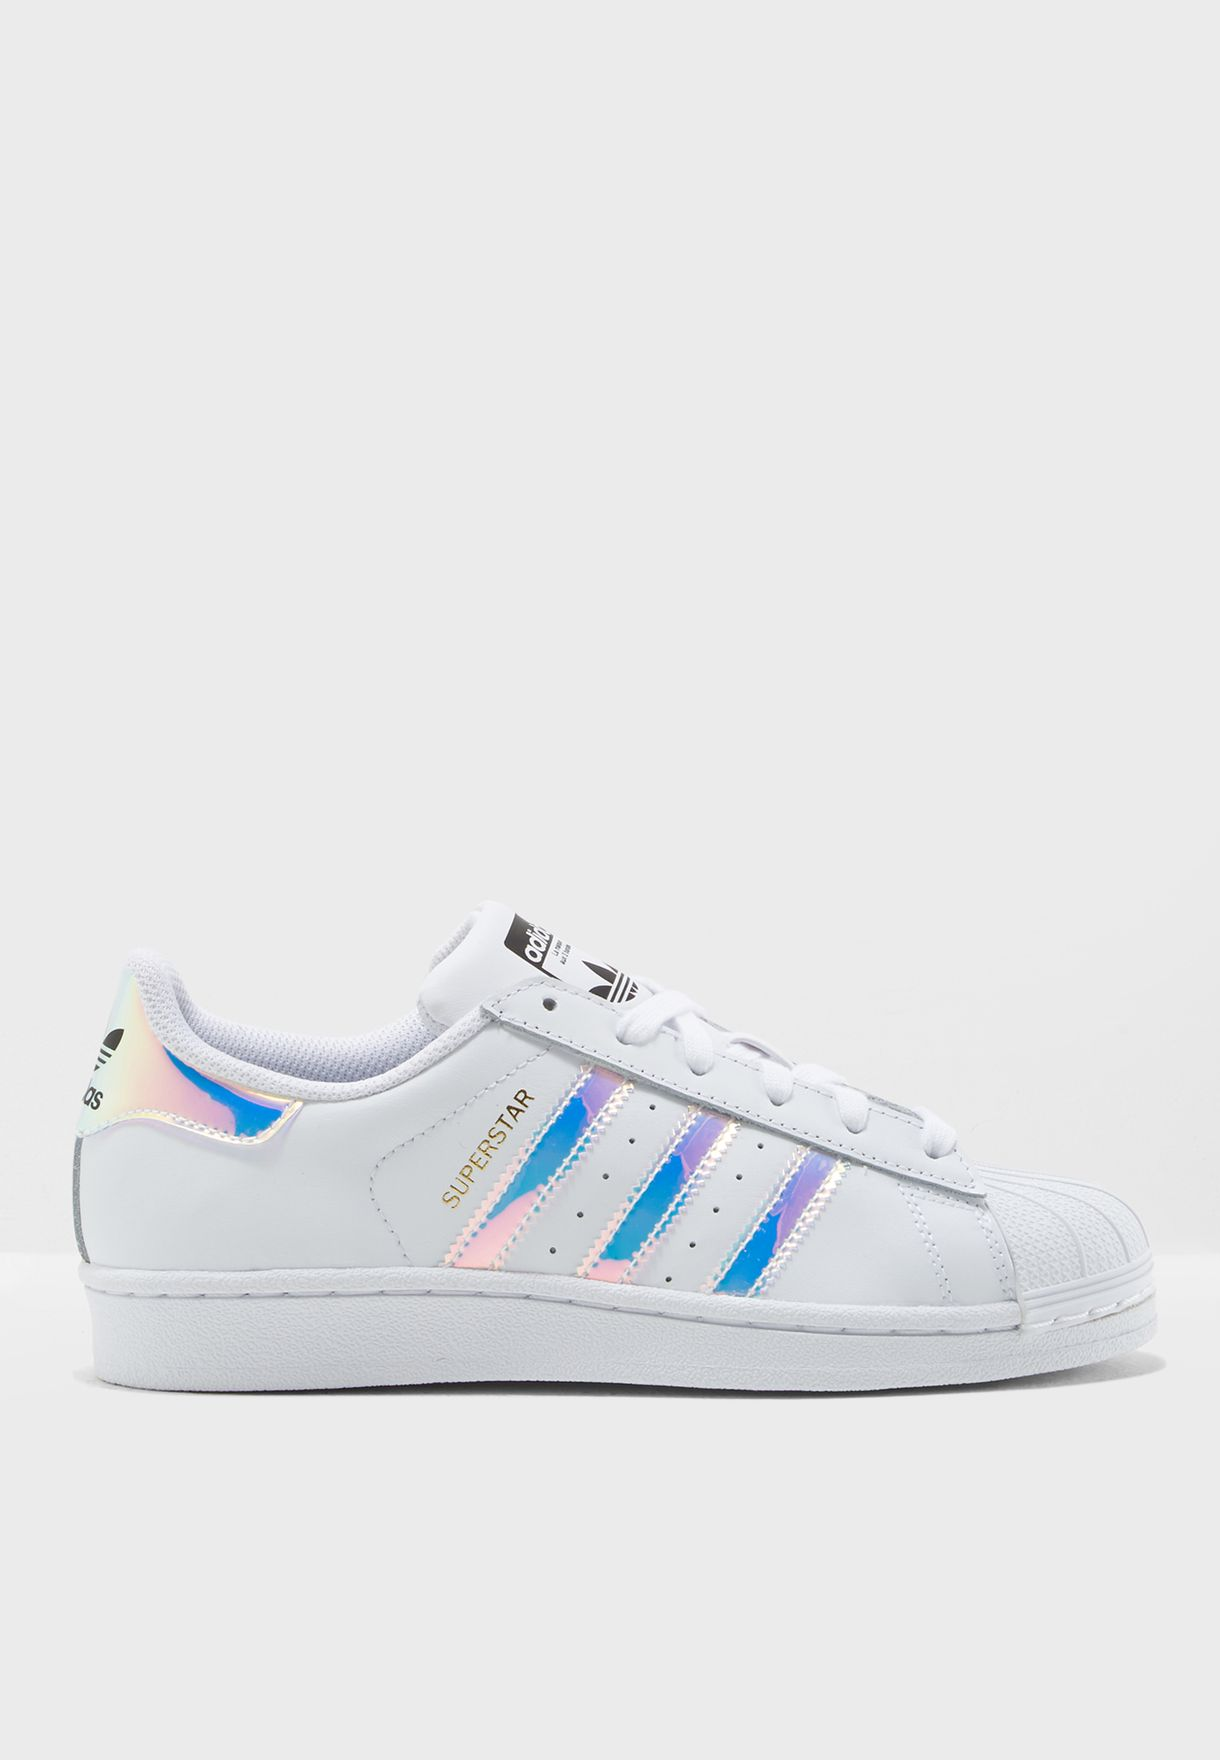 adidas superstar shoes uae